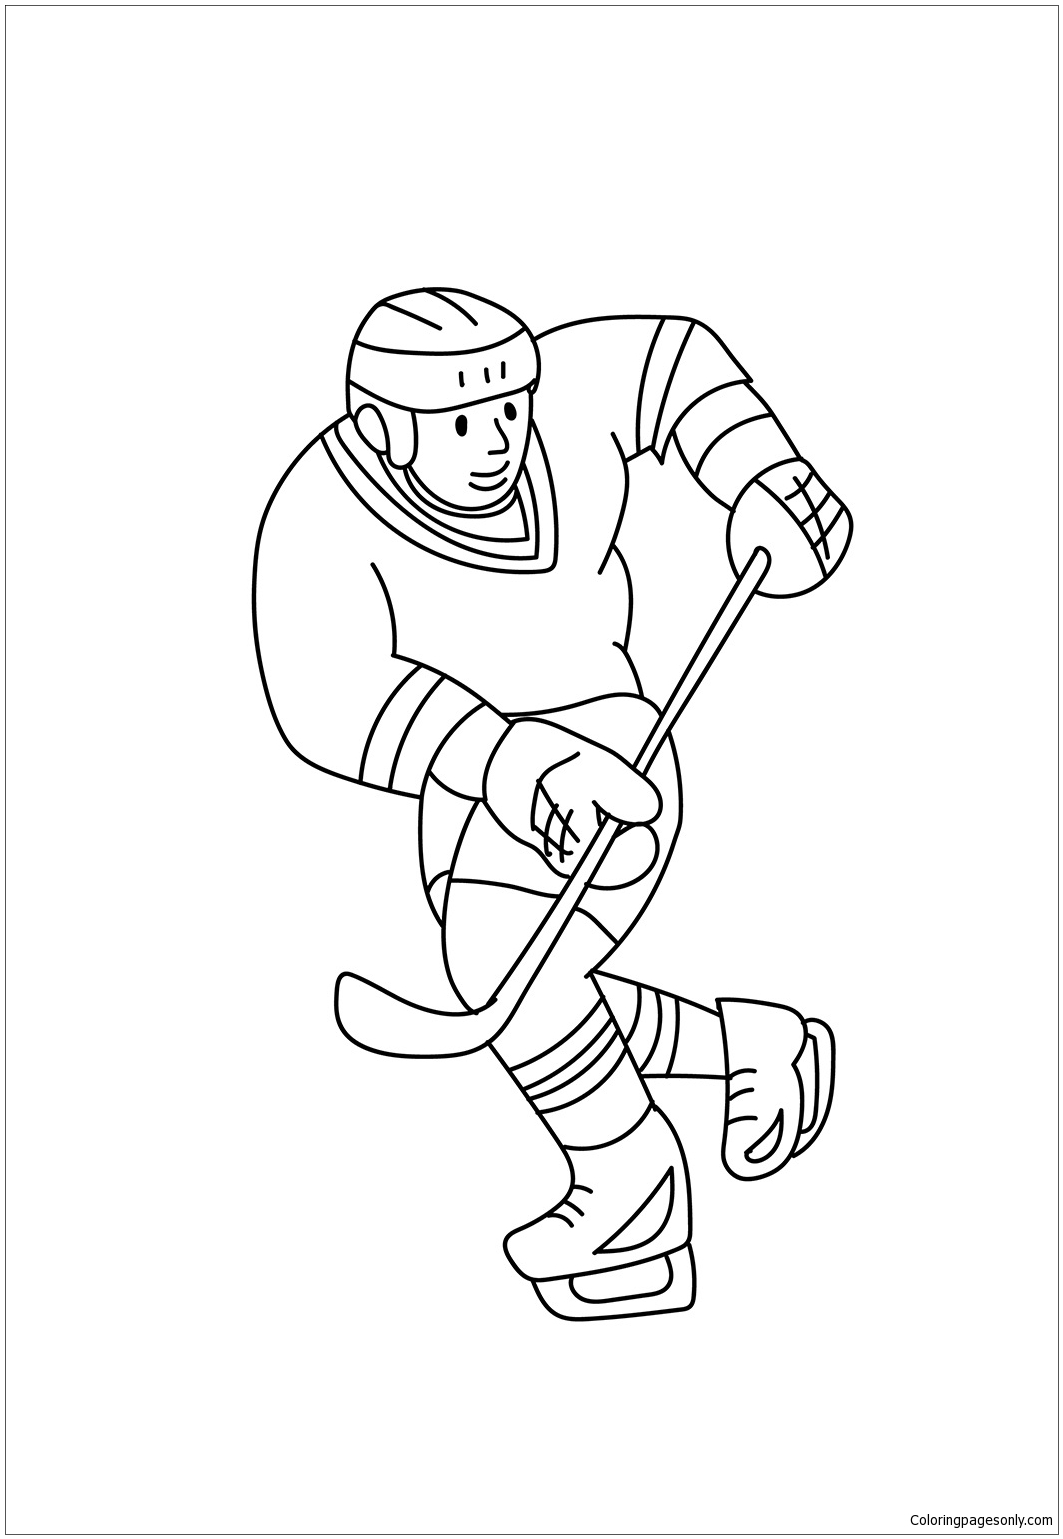 free download hockey coloring pages nhl on 17 best images about lincoln pinterest hockey. Black Bedroom Furniture Sets. Home Design Ideas